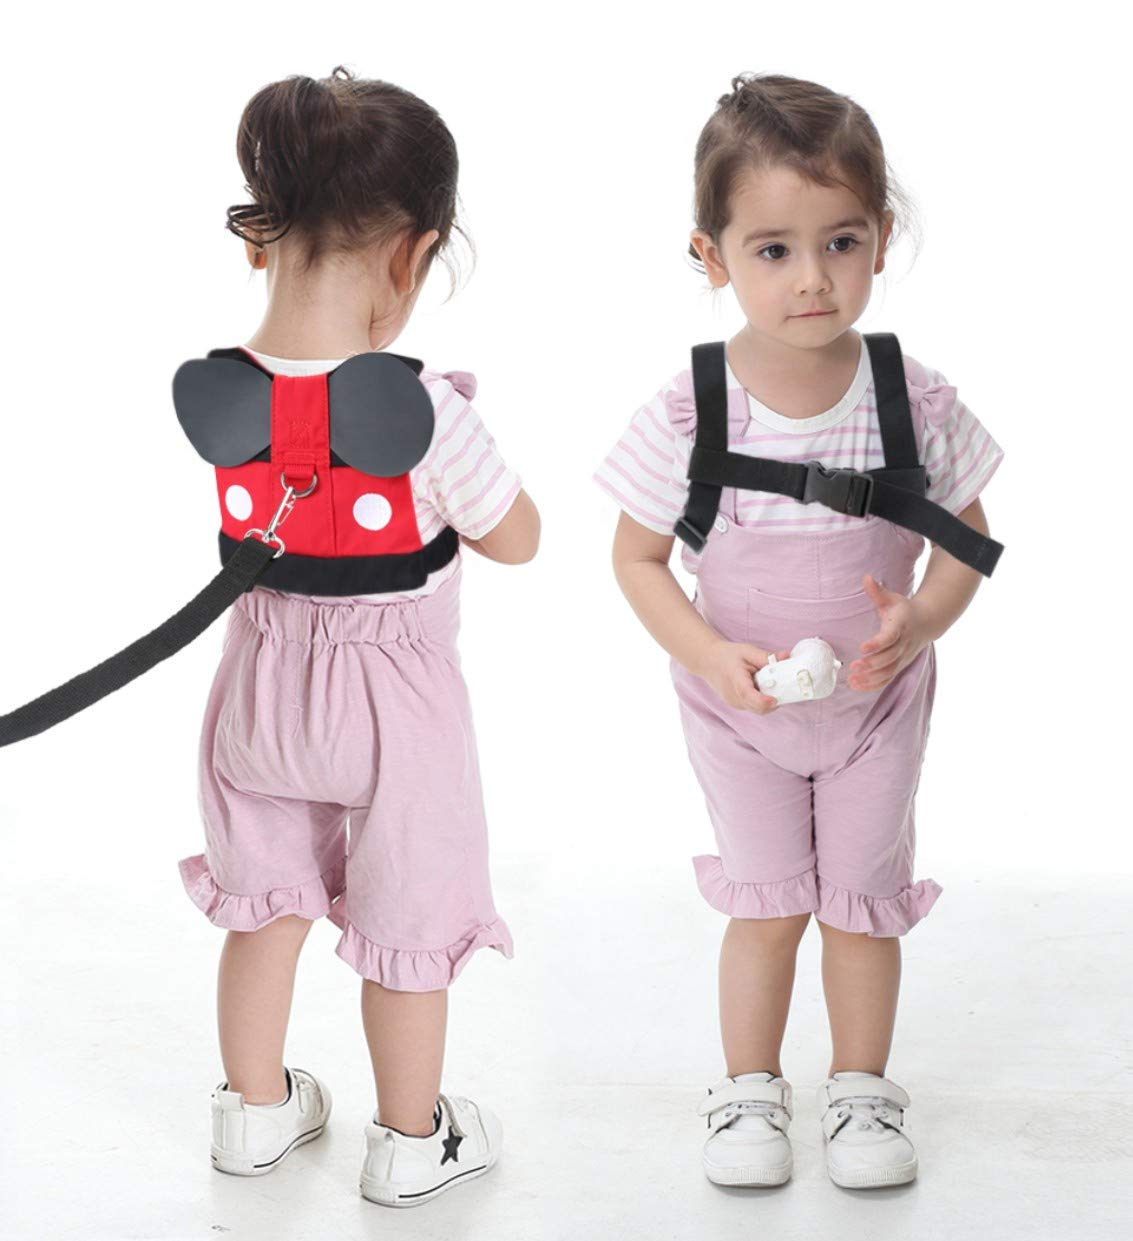 Idefair Kids Harness Kids Walking Leash Safety,Baby Anti Lost Safety Harness,Toddler Harness Safety Leashes for 1-5 Years Old Boys and Girls - Red by Idefair (Image #3)